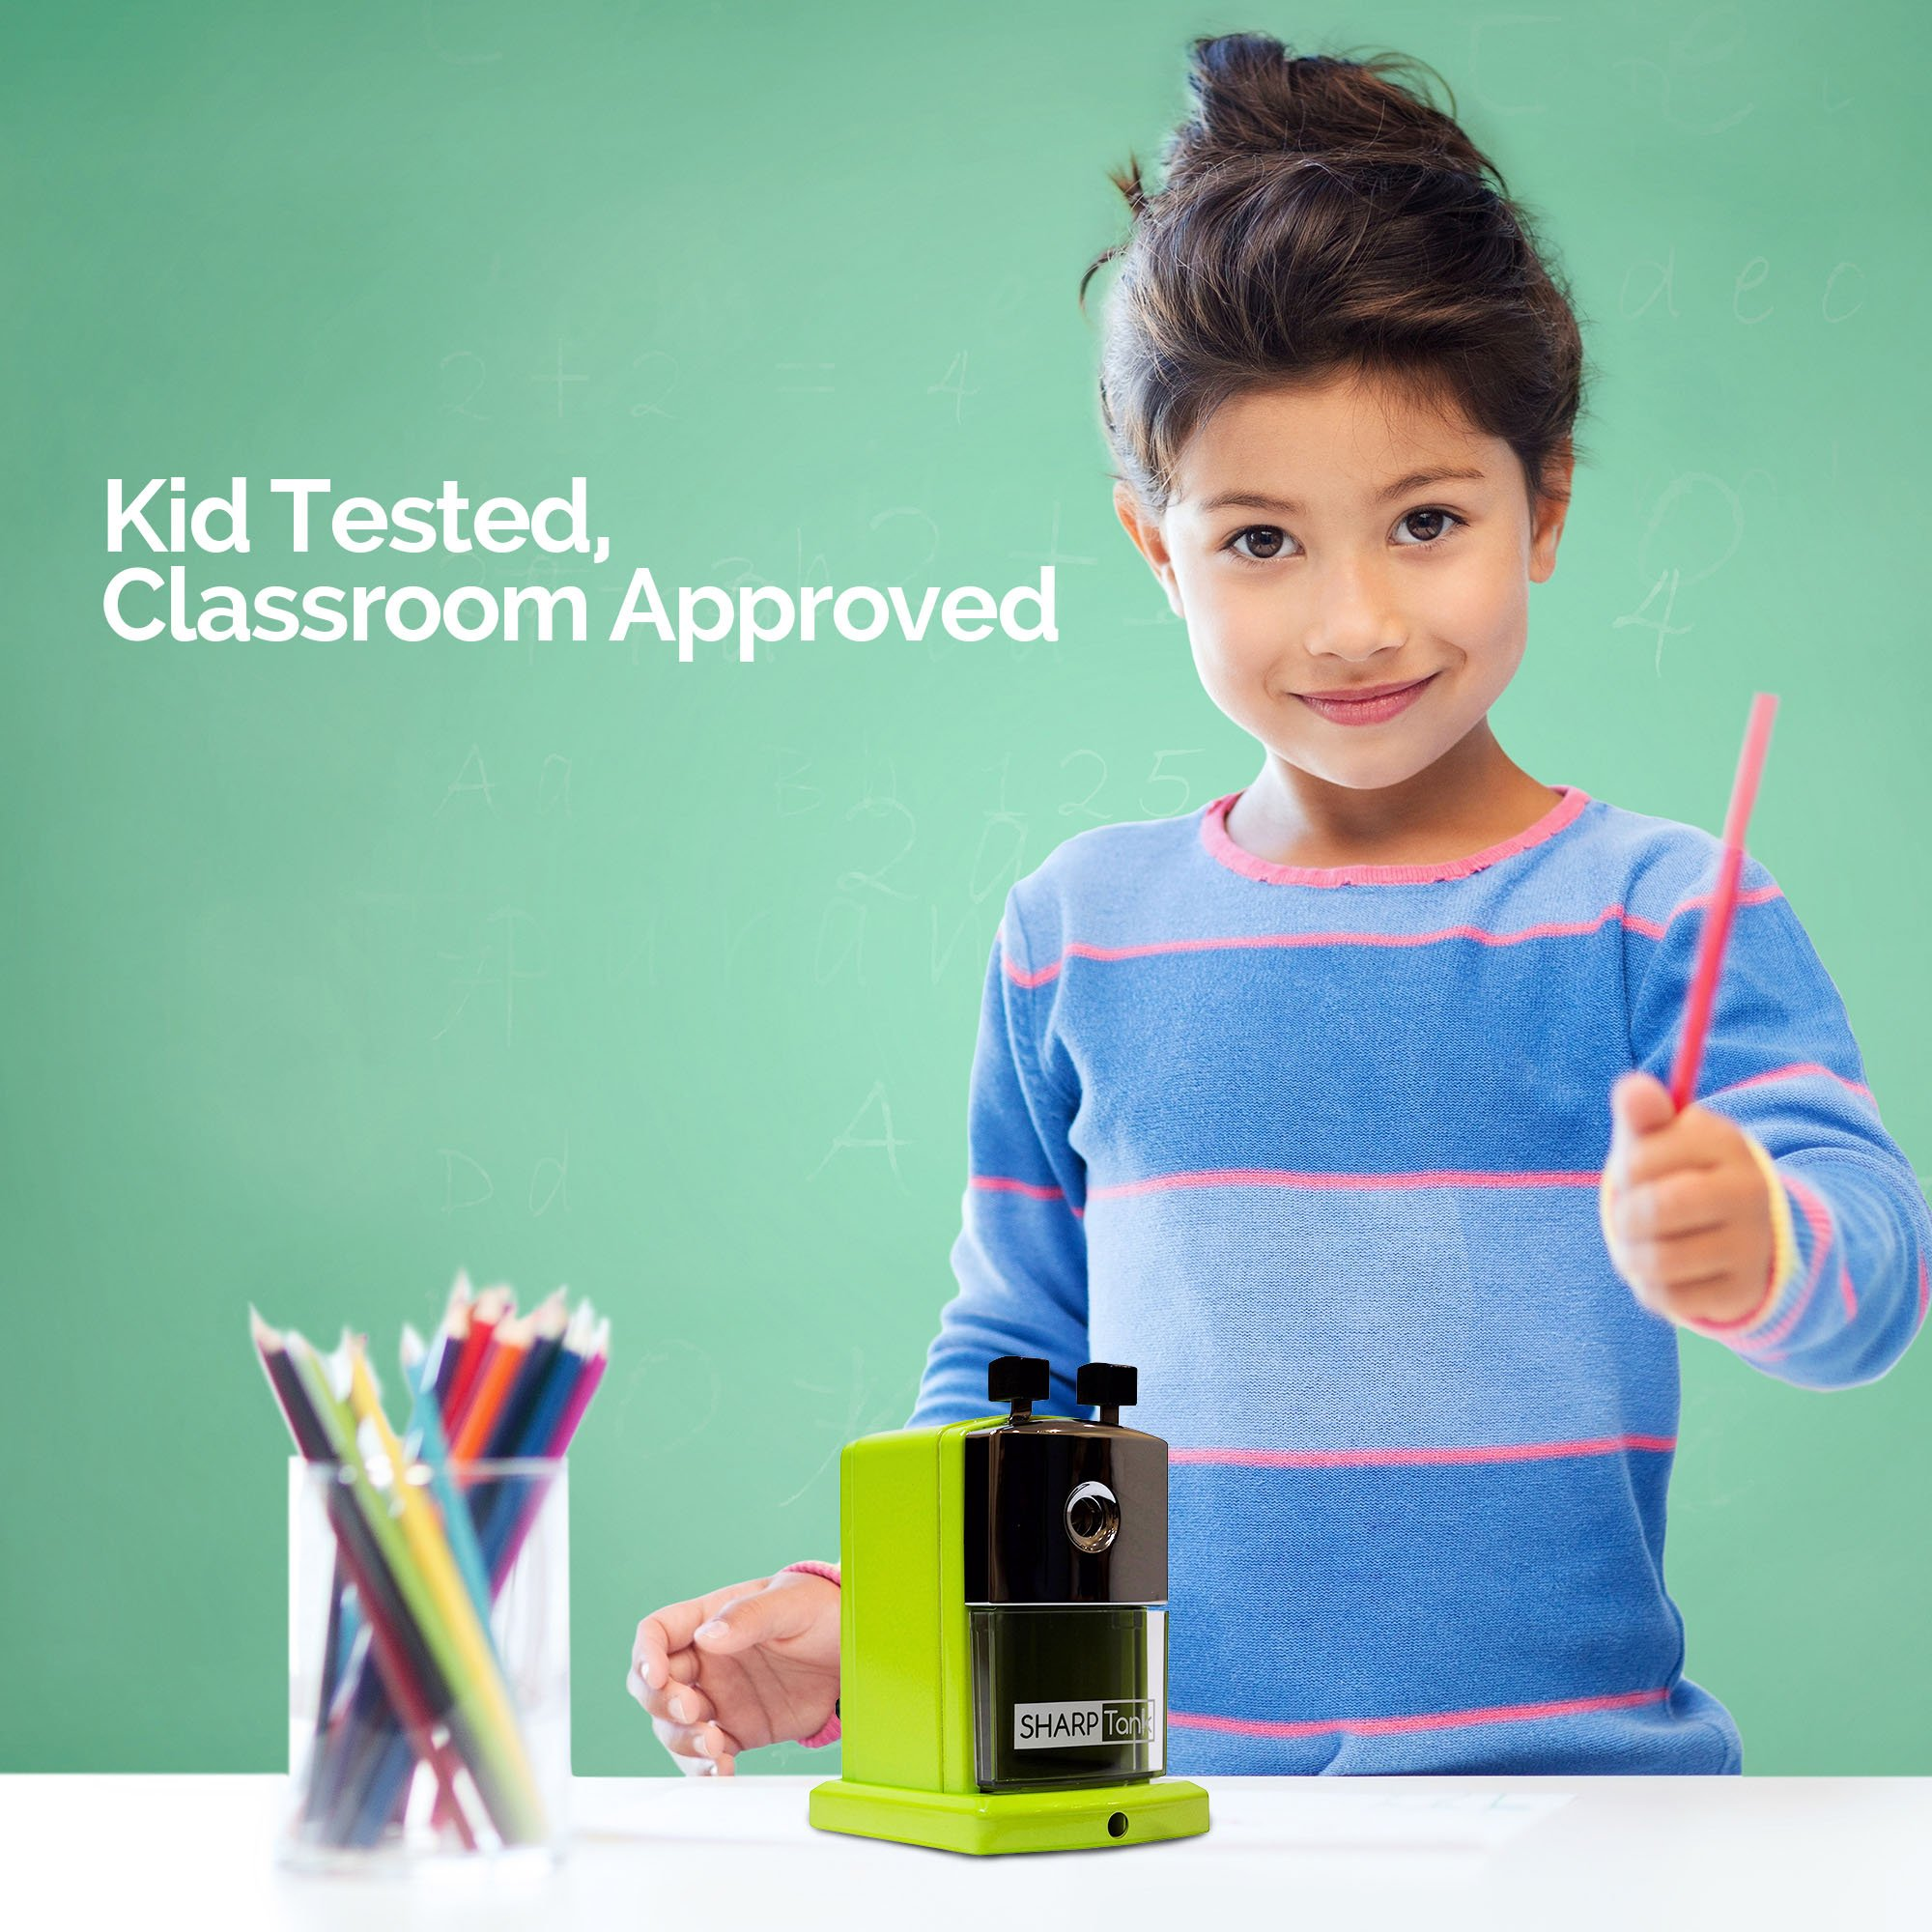 SharpTank - Portable Pencil Sharpener (Key Lime Green) - Compact & Quiet Classroom Sharpener That Gets Straight to The Point! by SHARP TANK (Image #2)